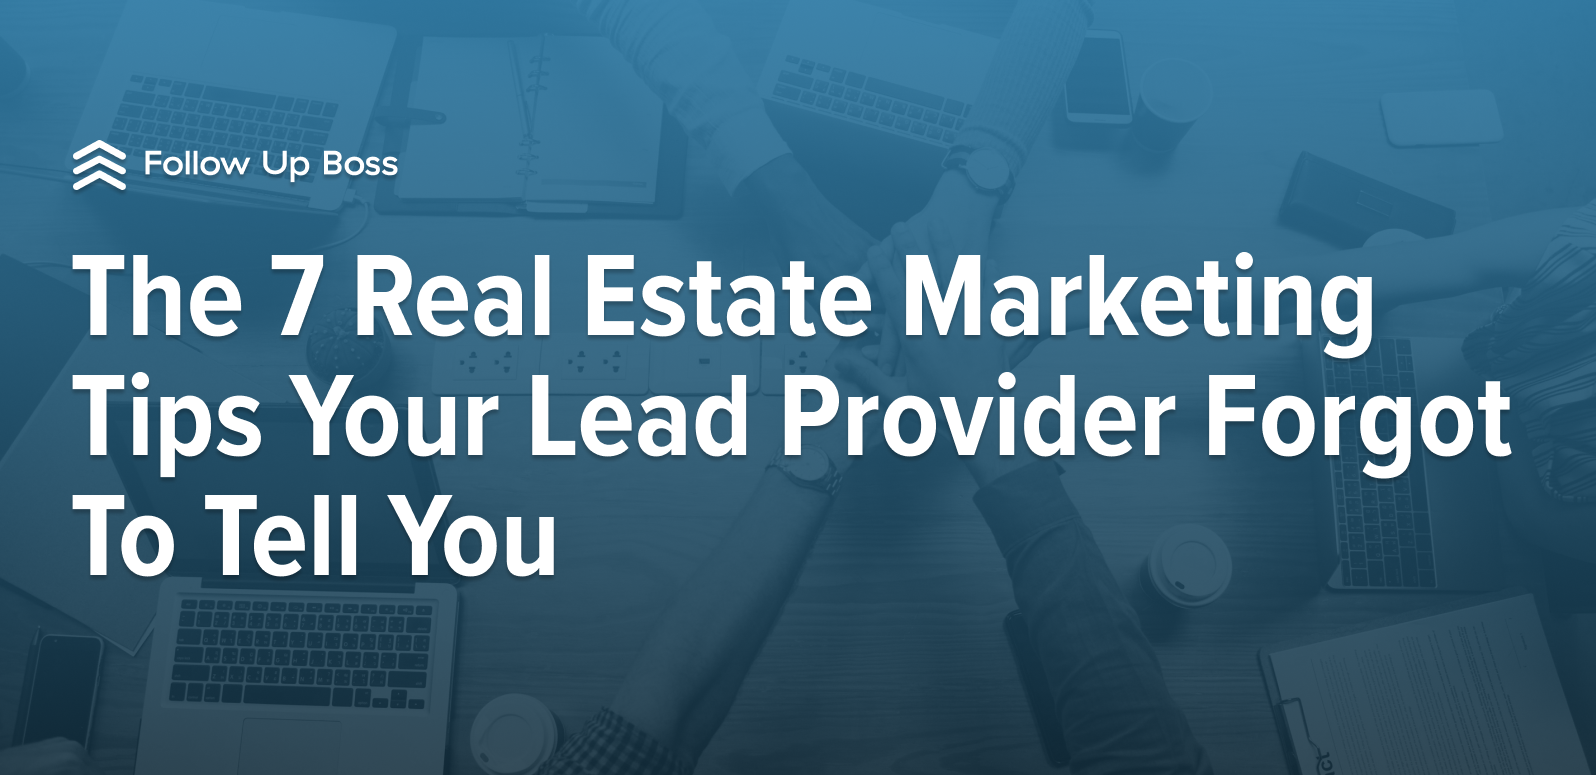 The 7 Real Estate Marketing Tips Your Lead Provider Forgot To Tell You